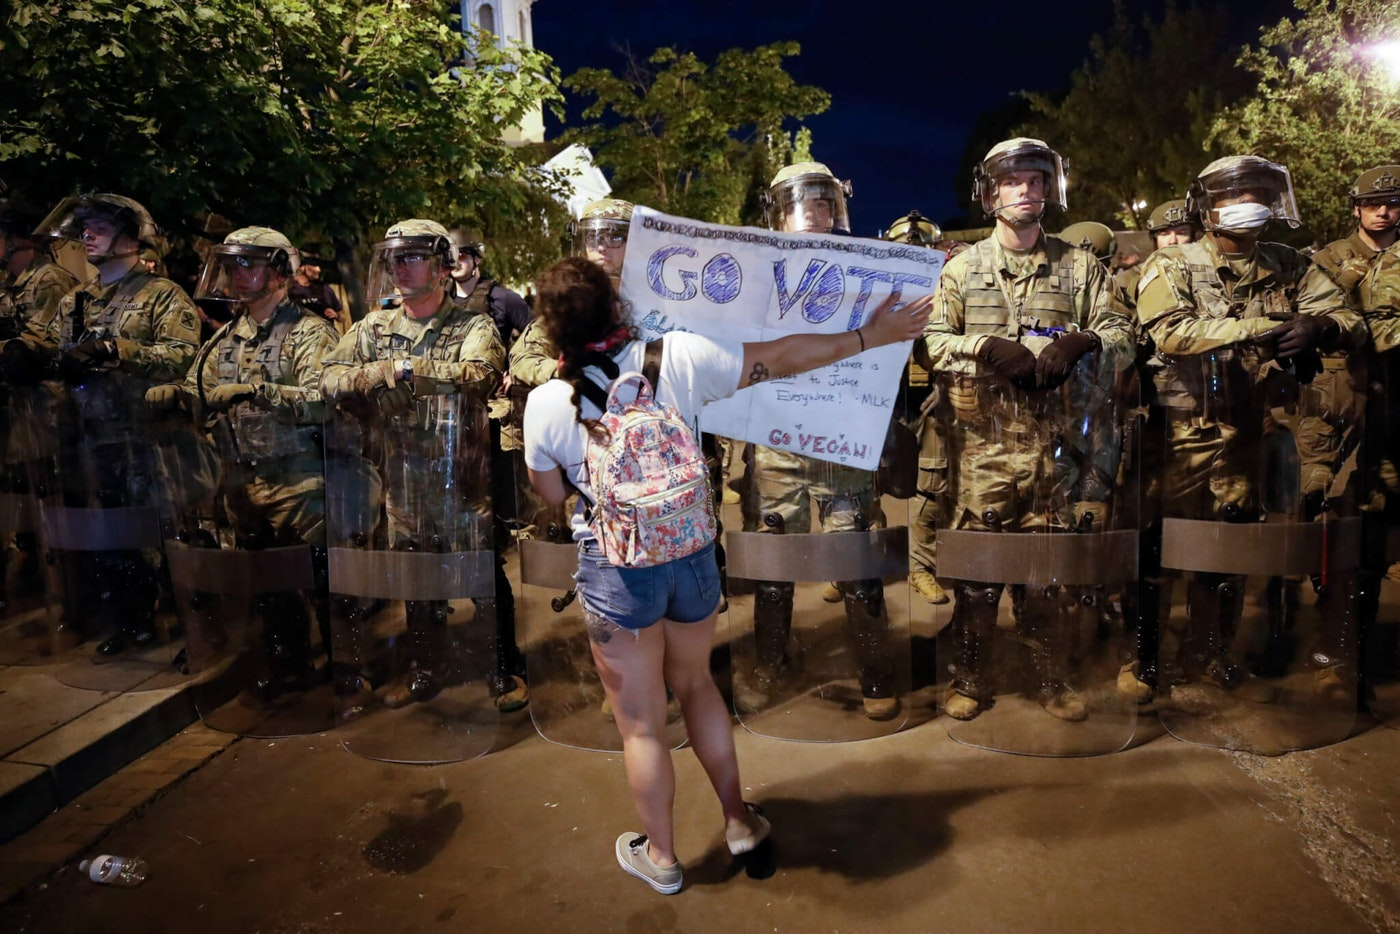 Utah National Guard soldiers stand on a police line as demonstrators gather to protest the death of George Floyd, Thursday, June 4, 2020, near the White House in Washington. (AP Photo/Alex Brandon)